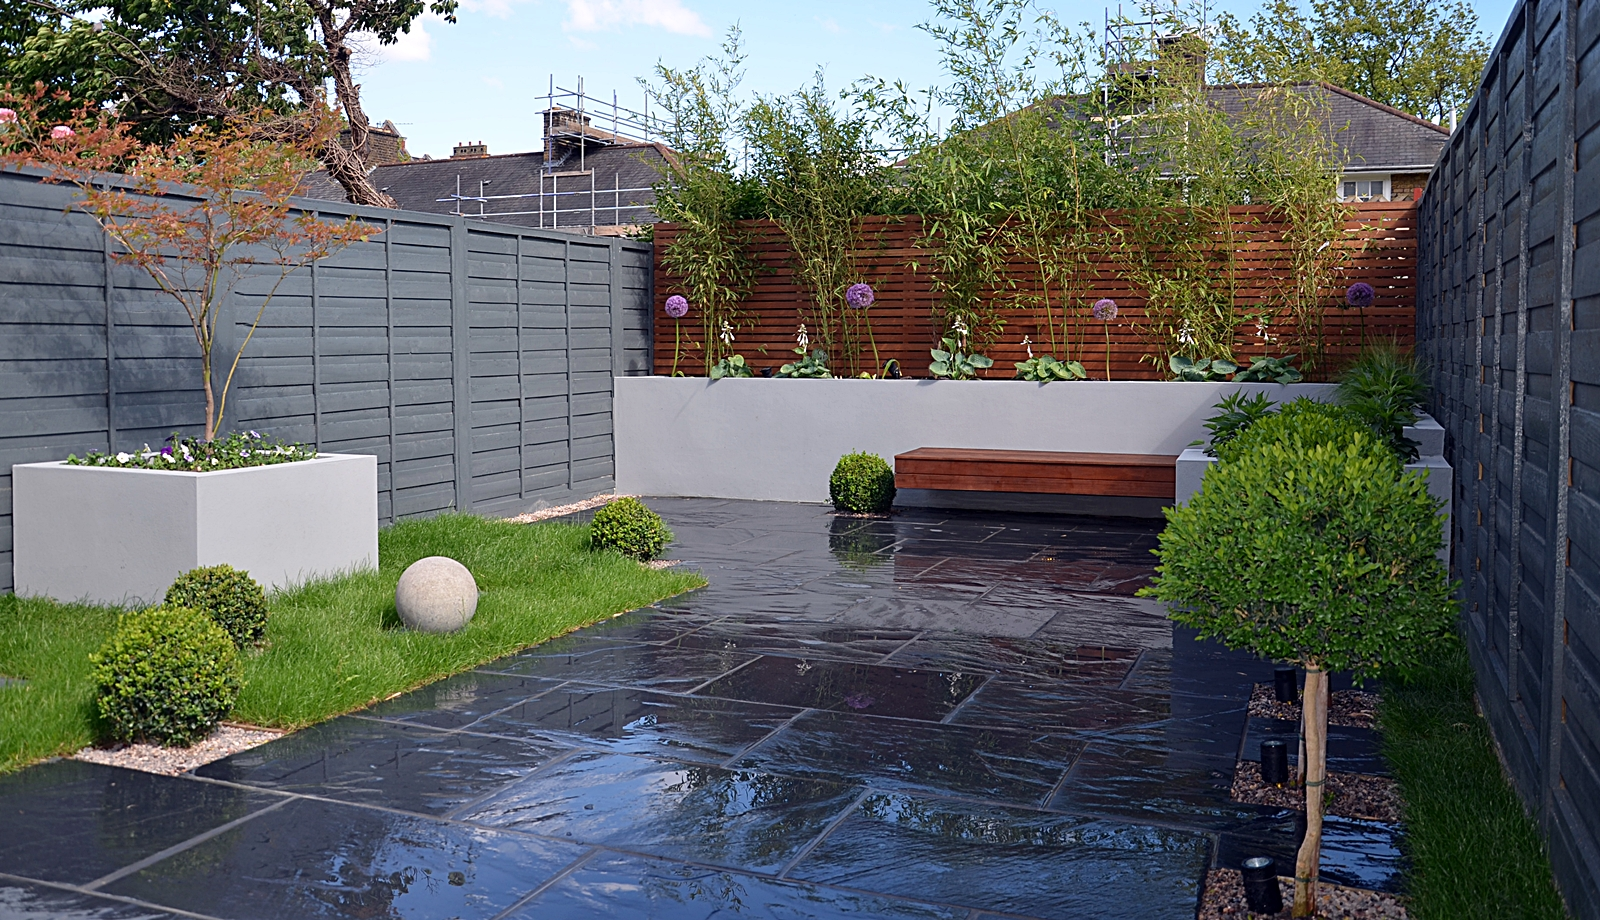 contemporary modern sleek garden design london patio raised bed planting